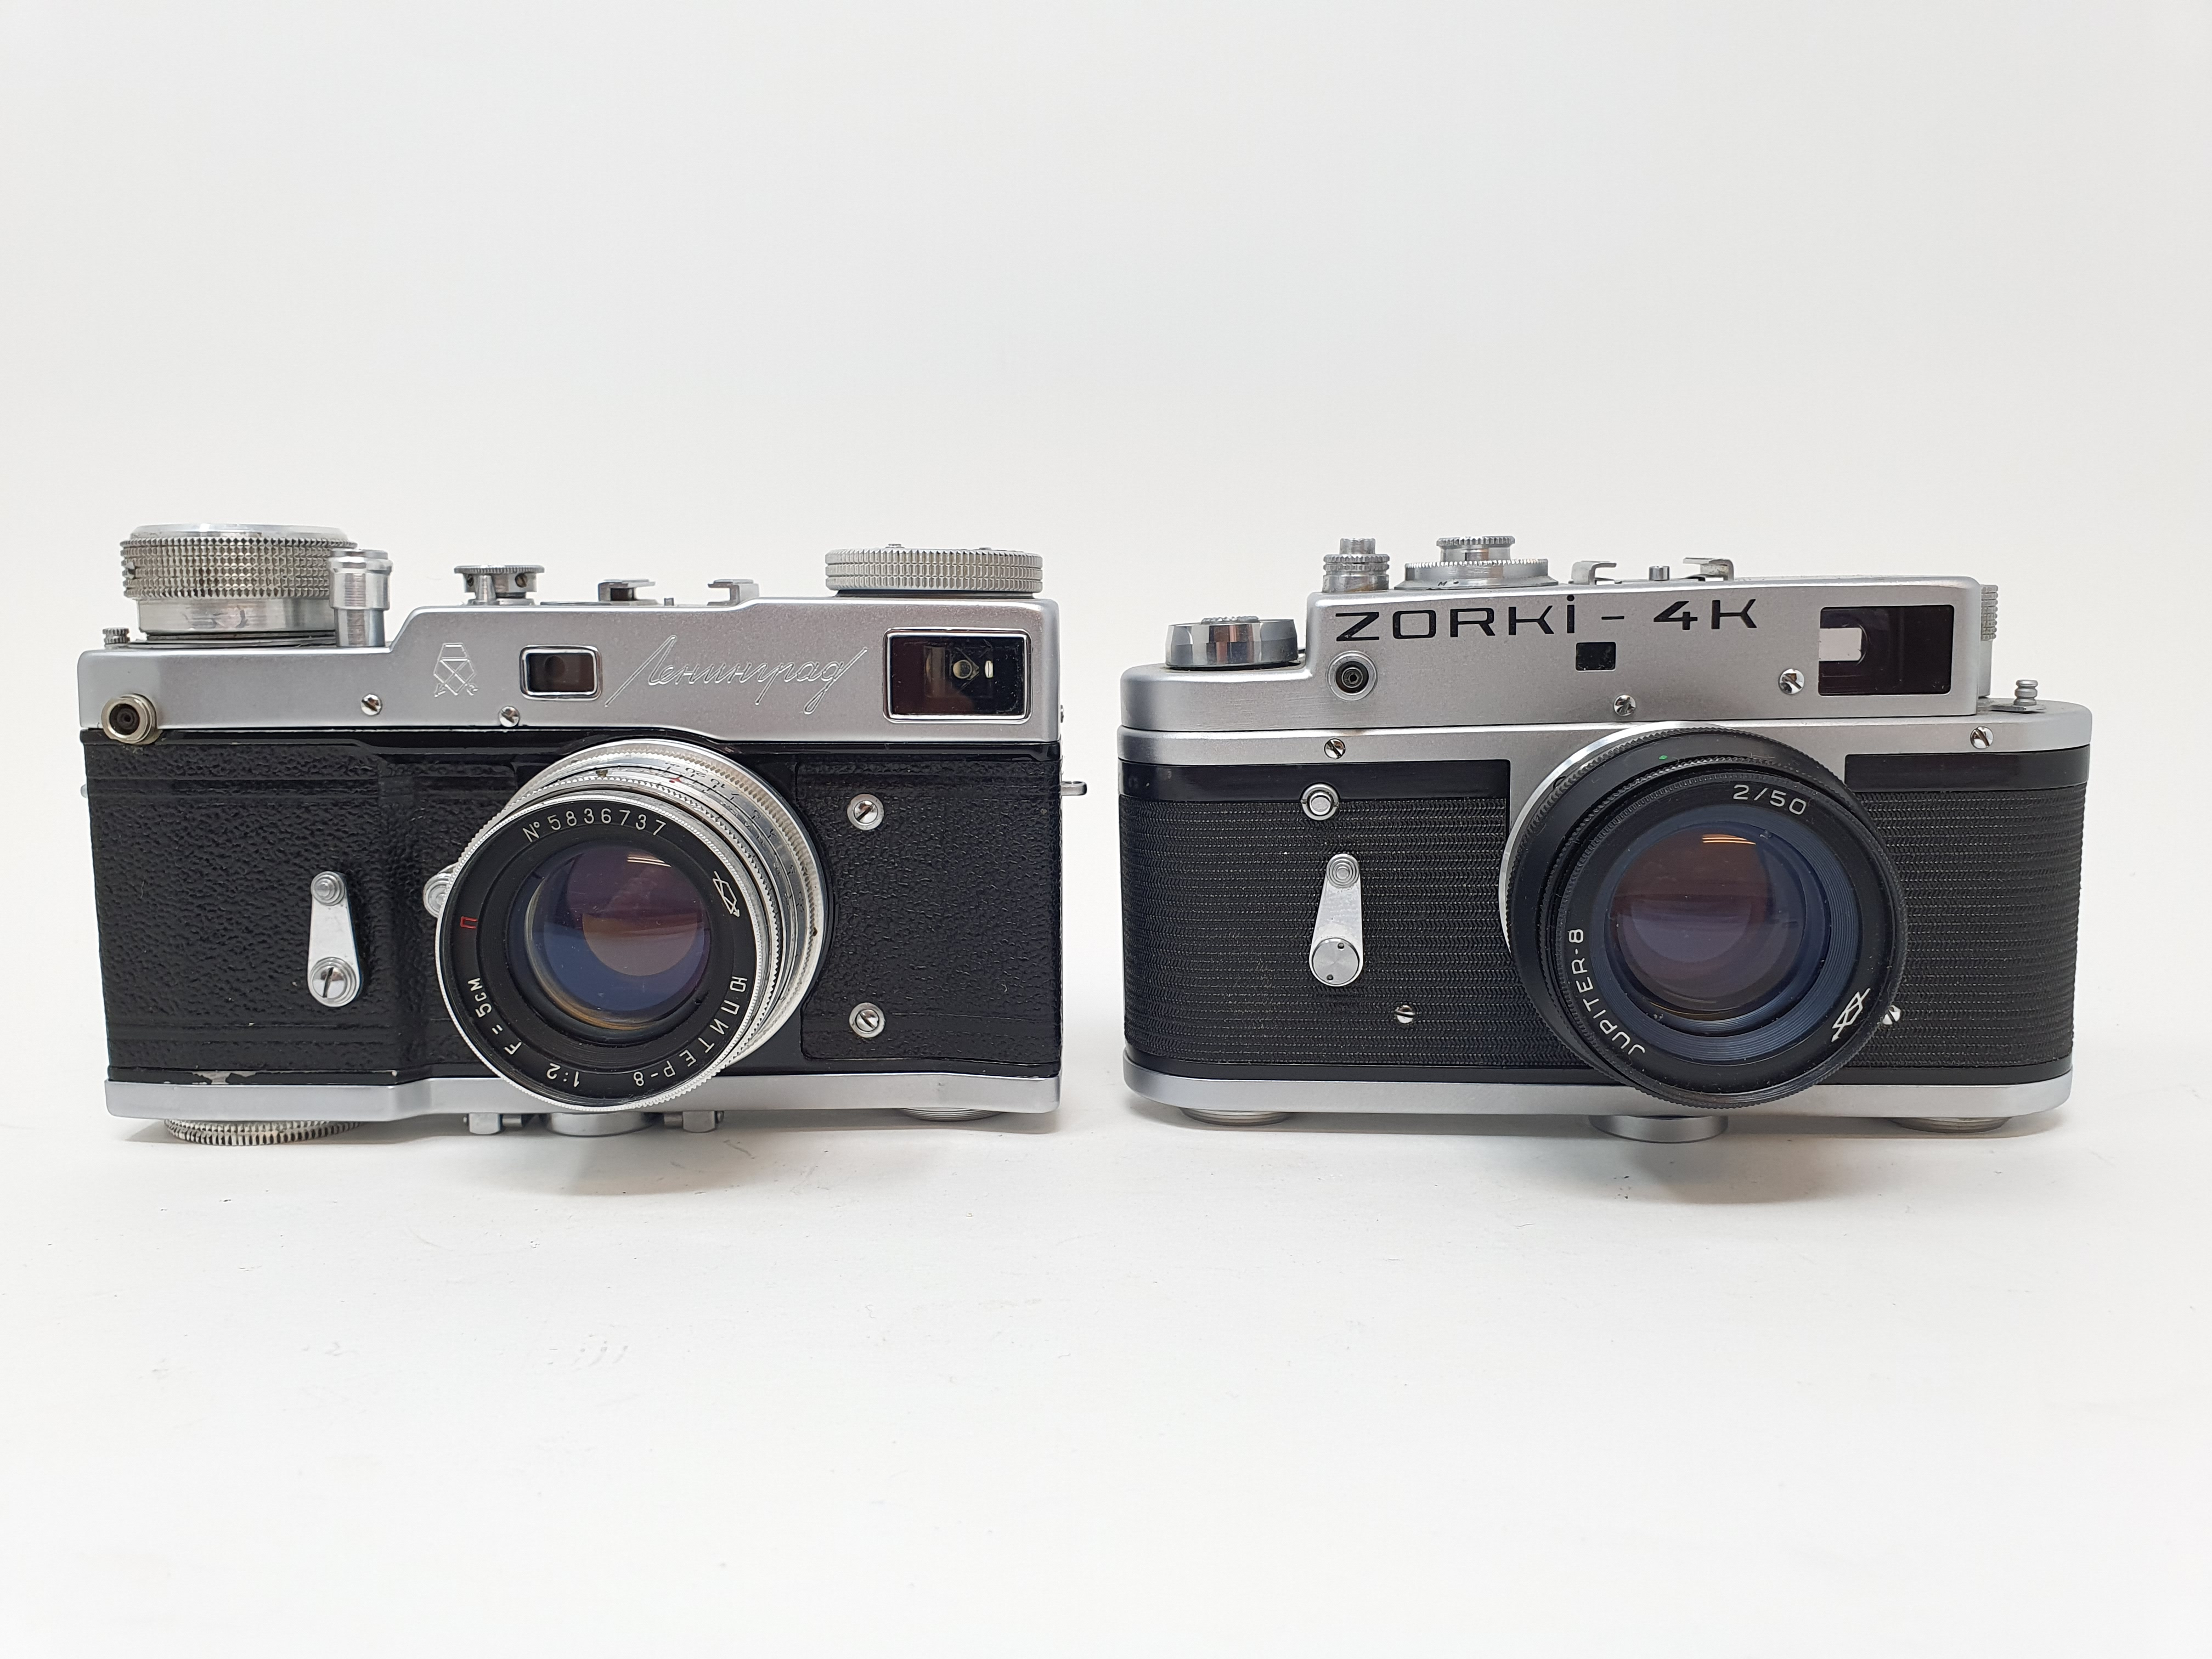 A Zorki-4K camera and a Russian camera (2) Provenance: Part of a vast single owner collection of